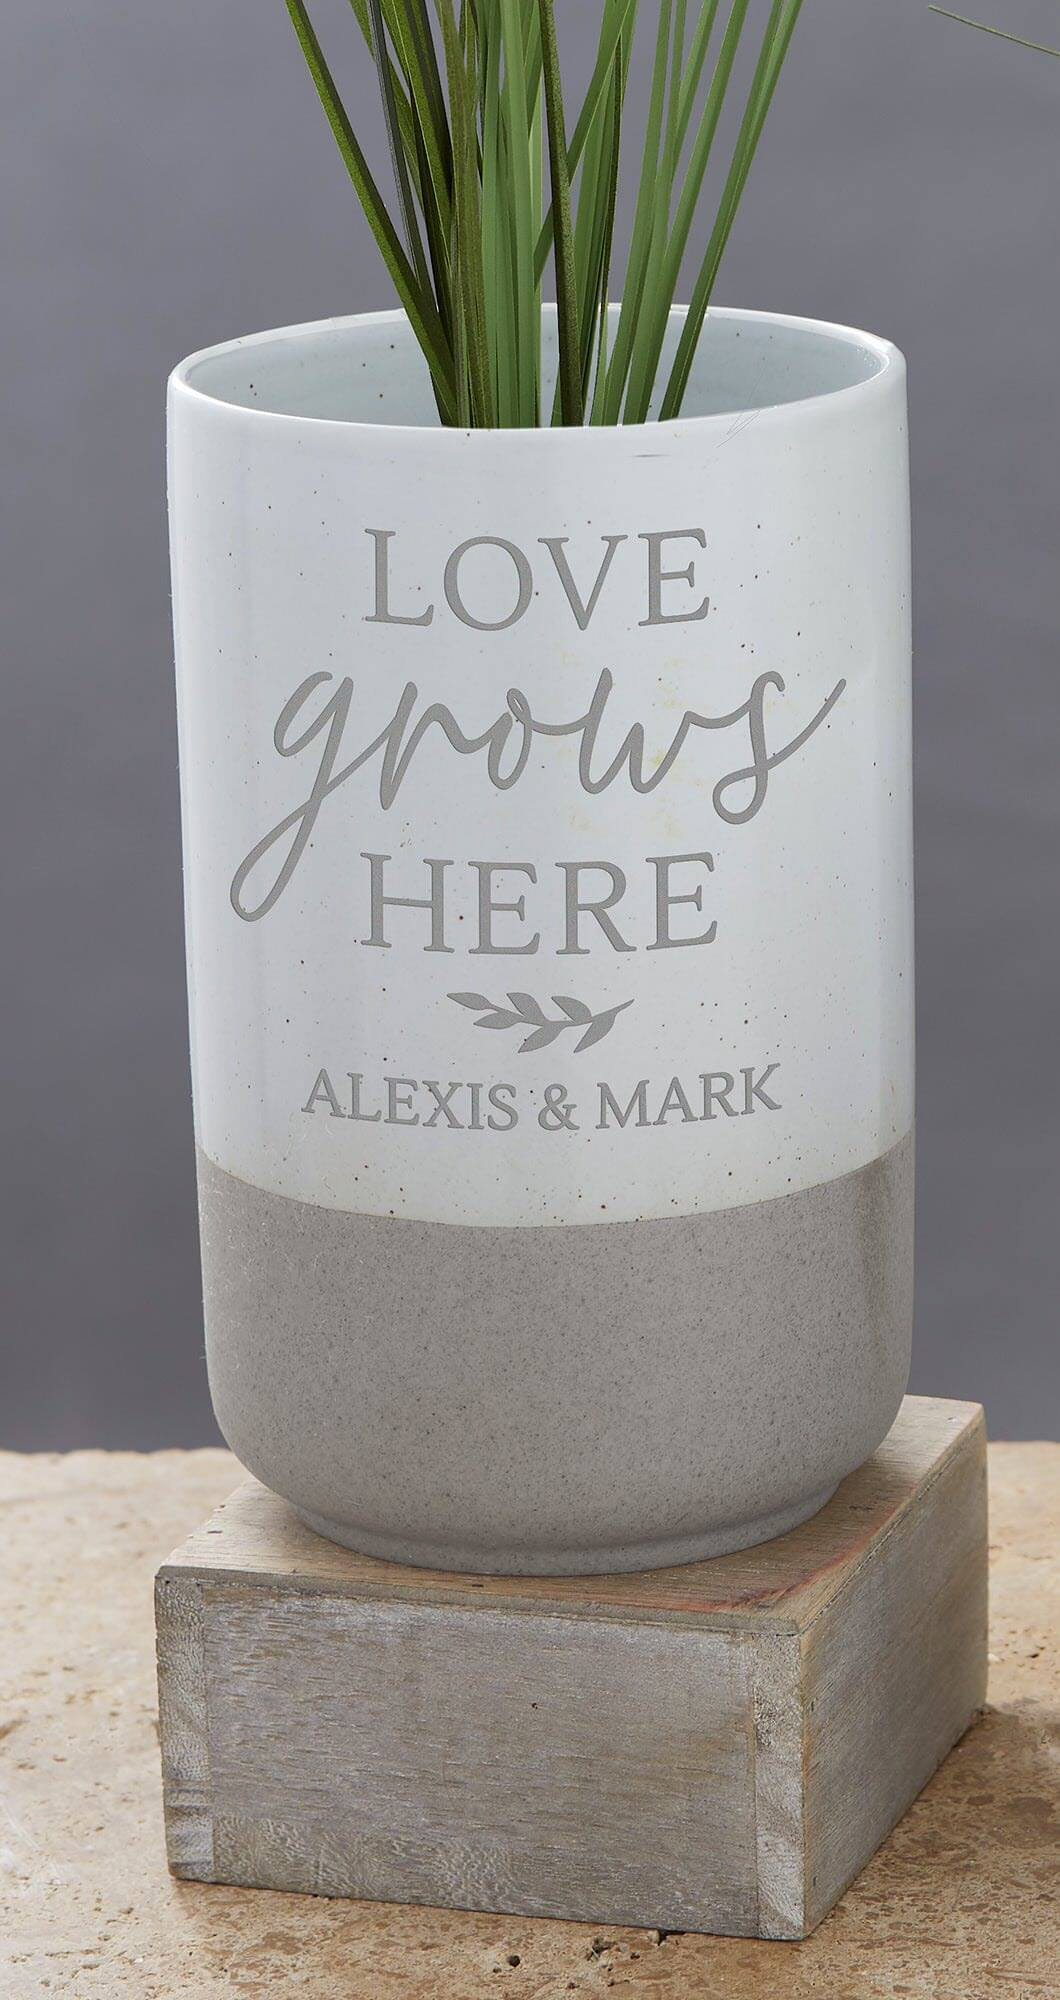 Love Grows here Cement Vase